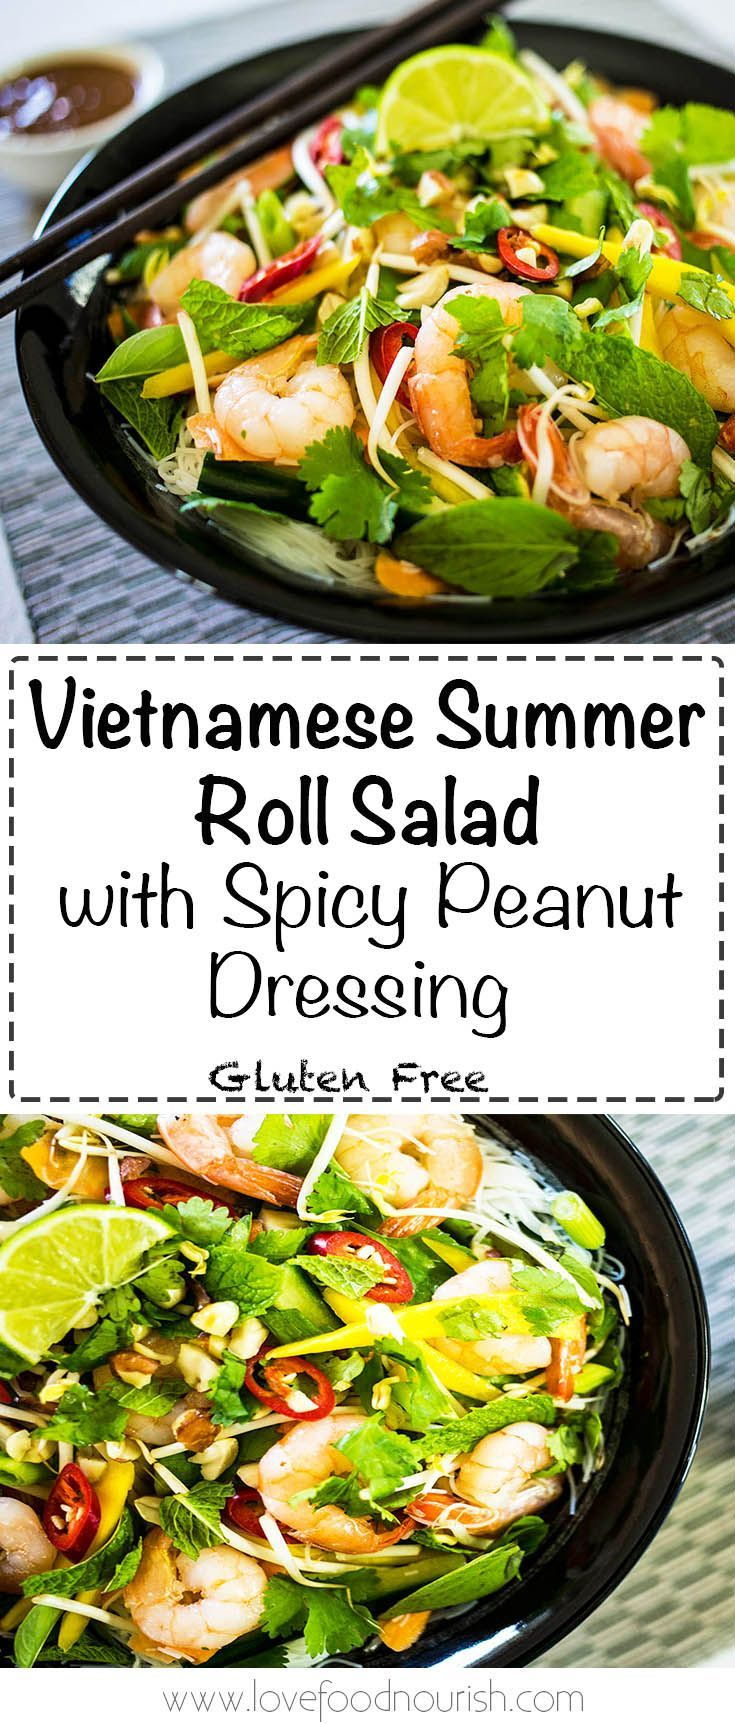 A delicious easy Vietnamese salad inspired by the Vietnamese summer rolls that is fresh and fragrant. Gluten Free, Dairy Free & Refined Sugar Free.